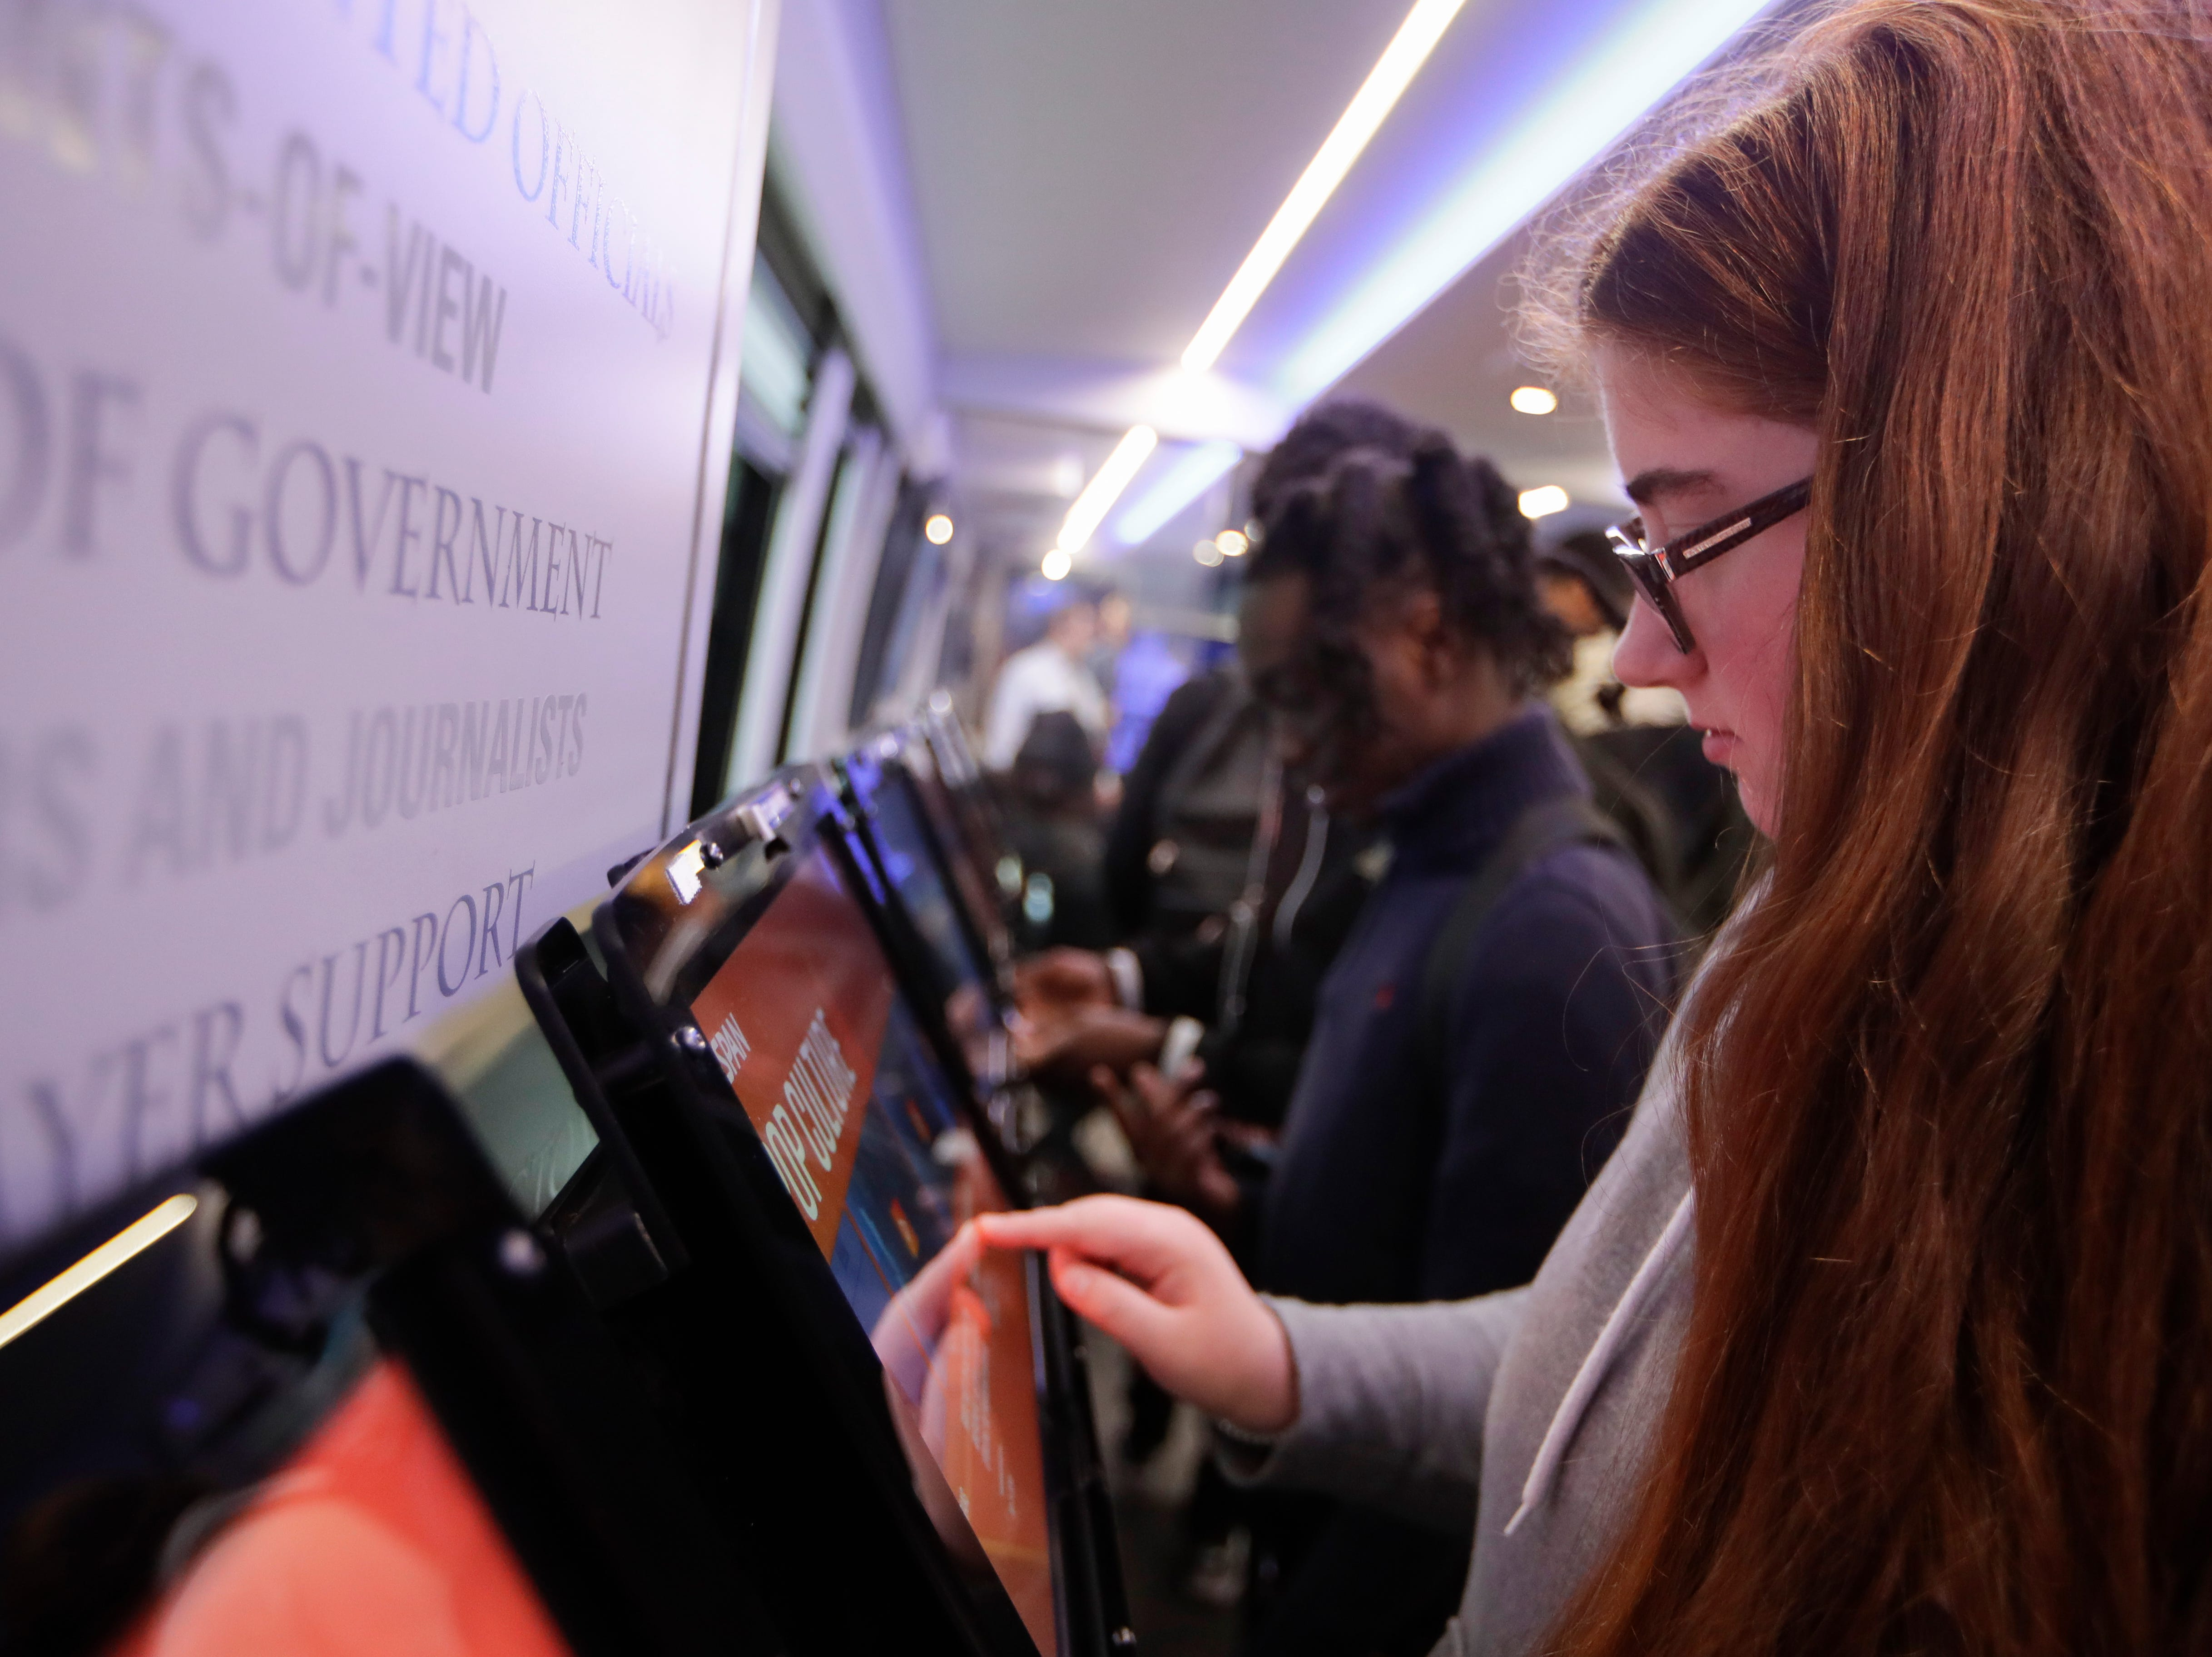 Casey Knowles, 17, scrolls through the choices of activities on the tablets inside the C-SPAN bus as it makes a stop at the Ghazvini Learning Center in Tallahassee, allowing Success Academy and Second Chance students to come aboard the bus and learn about C-SPAN Monday, Dec. 3, 2018.